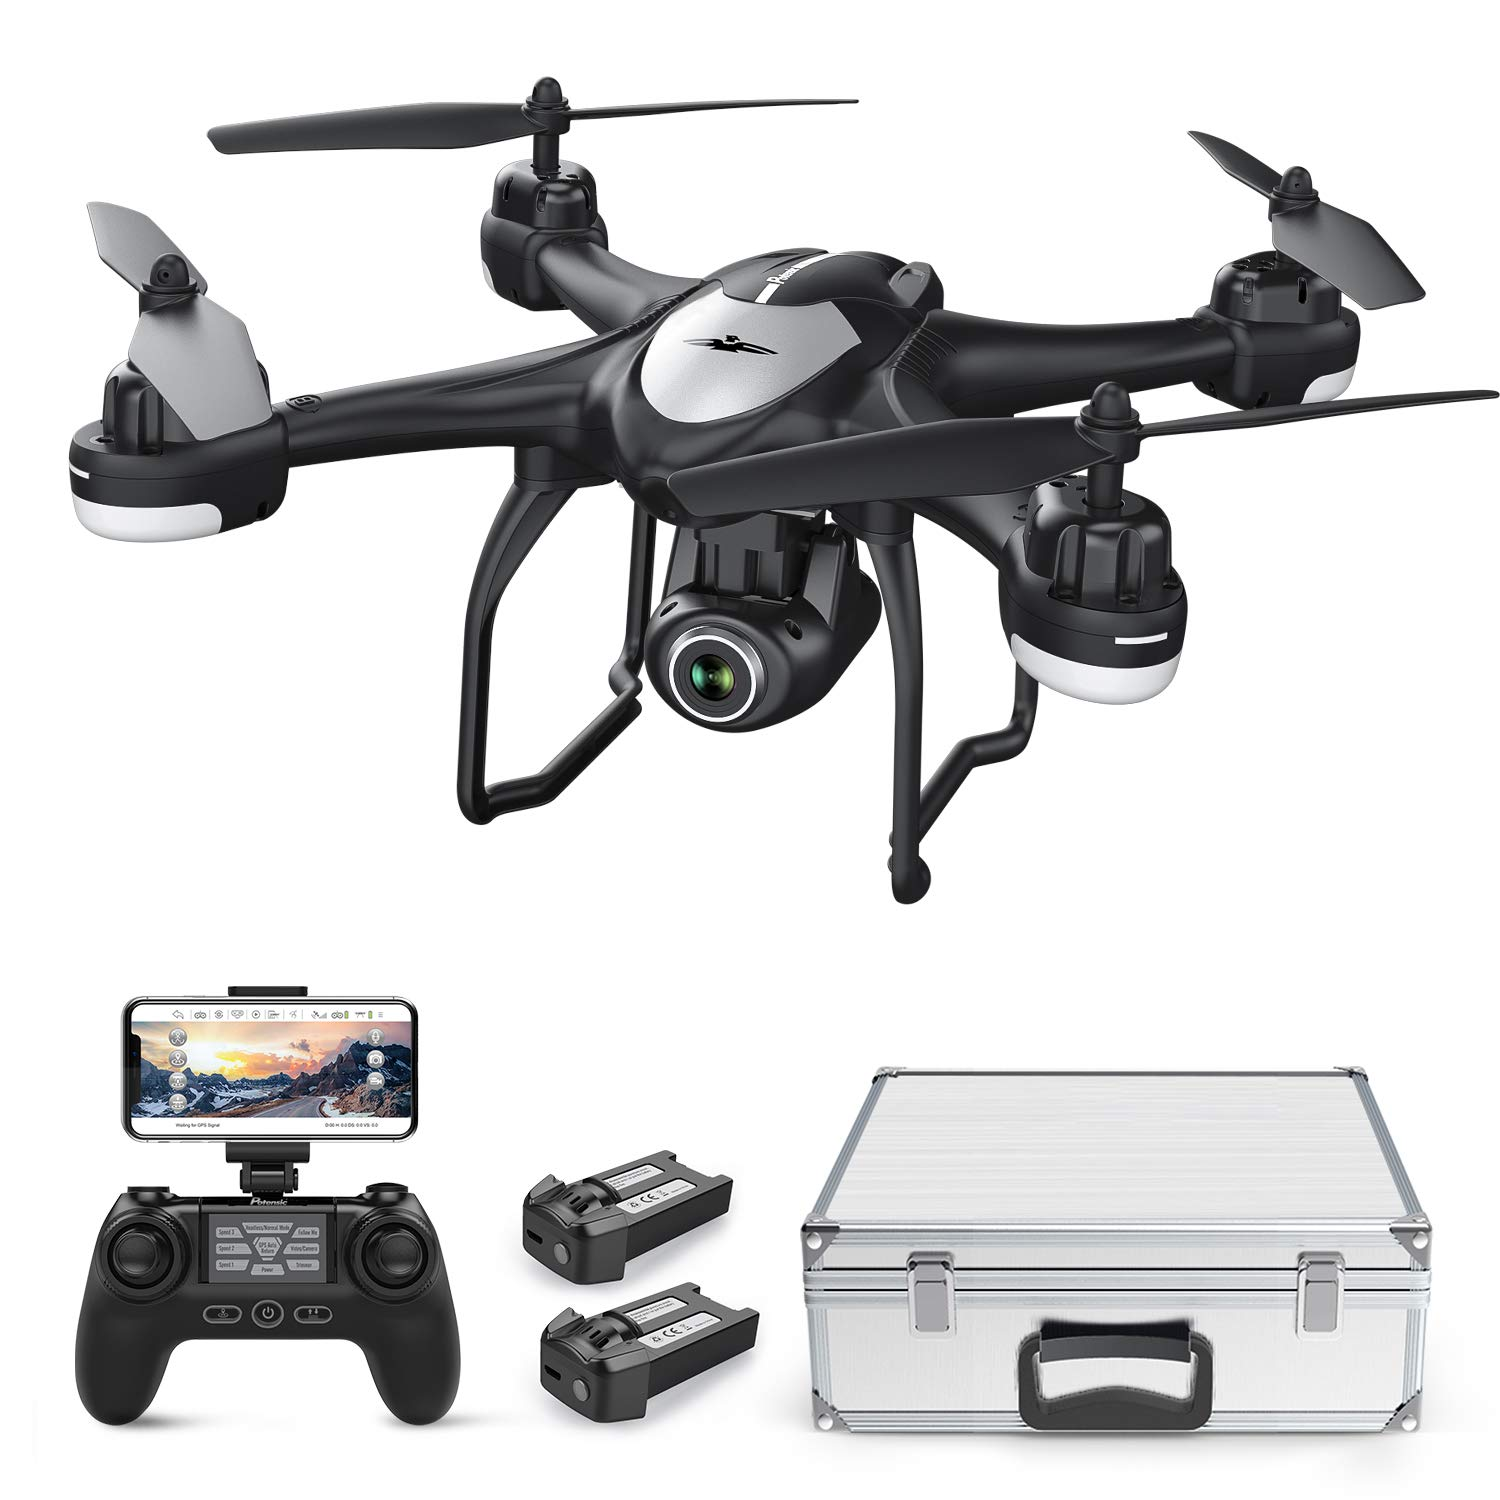 Thank you for giving me a great deal on this drone !!! My husband loves this so much and the case it came with was the best storage for this drone ! The flight was smooth just a little bit off balance from the wind. Calibrating this drone w